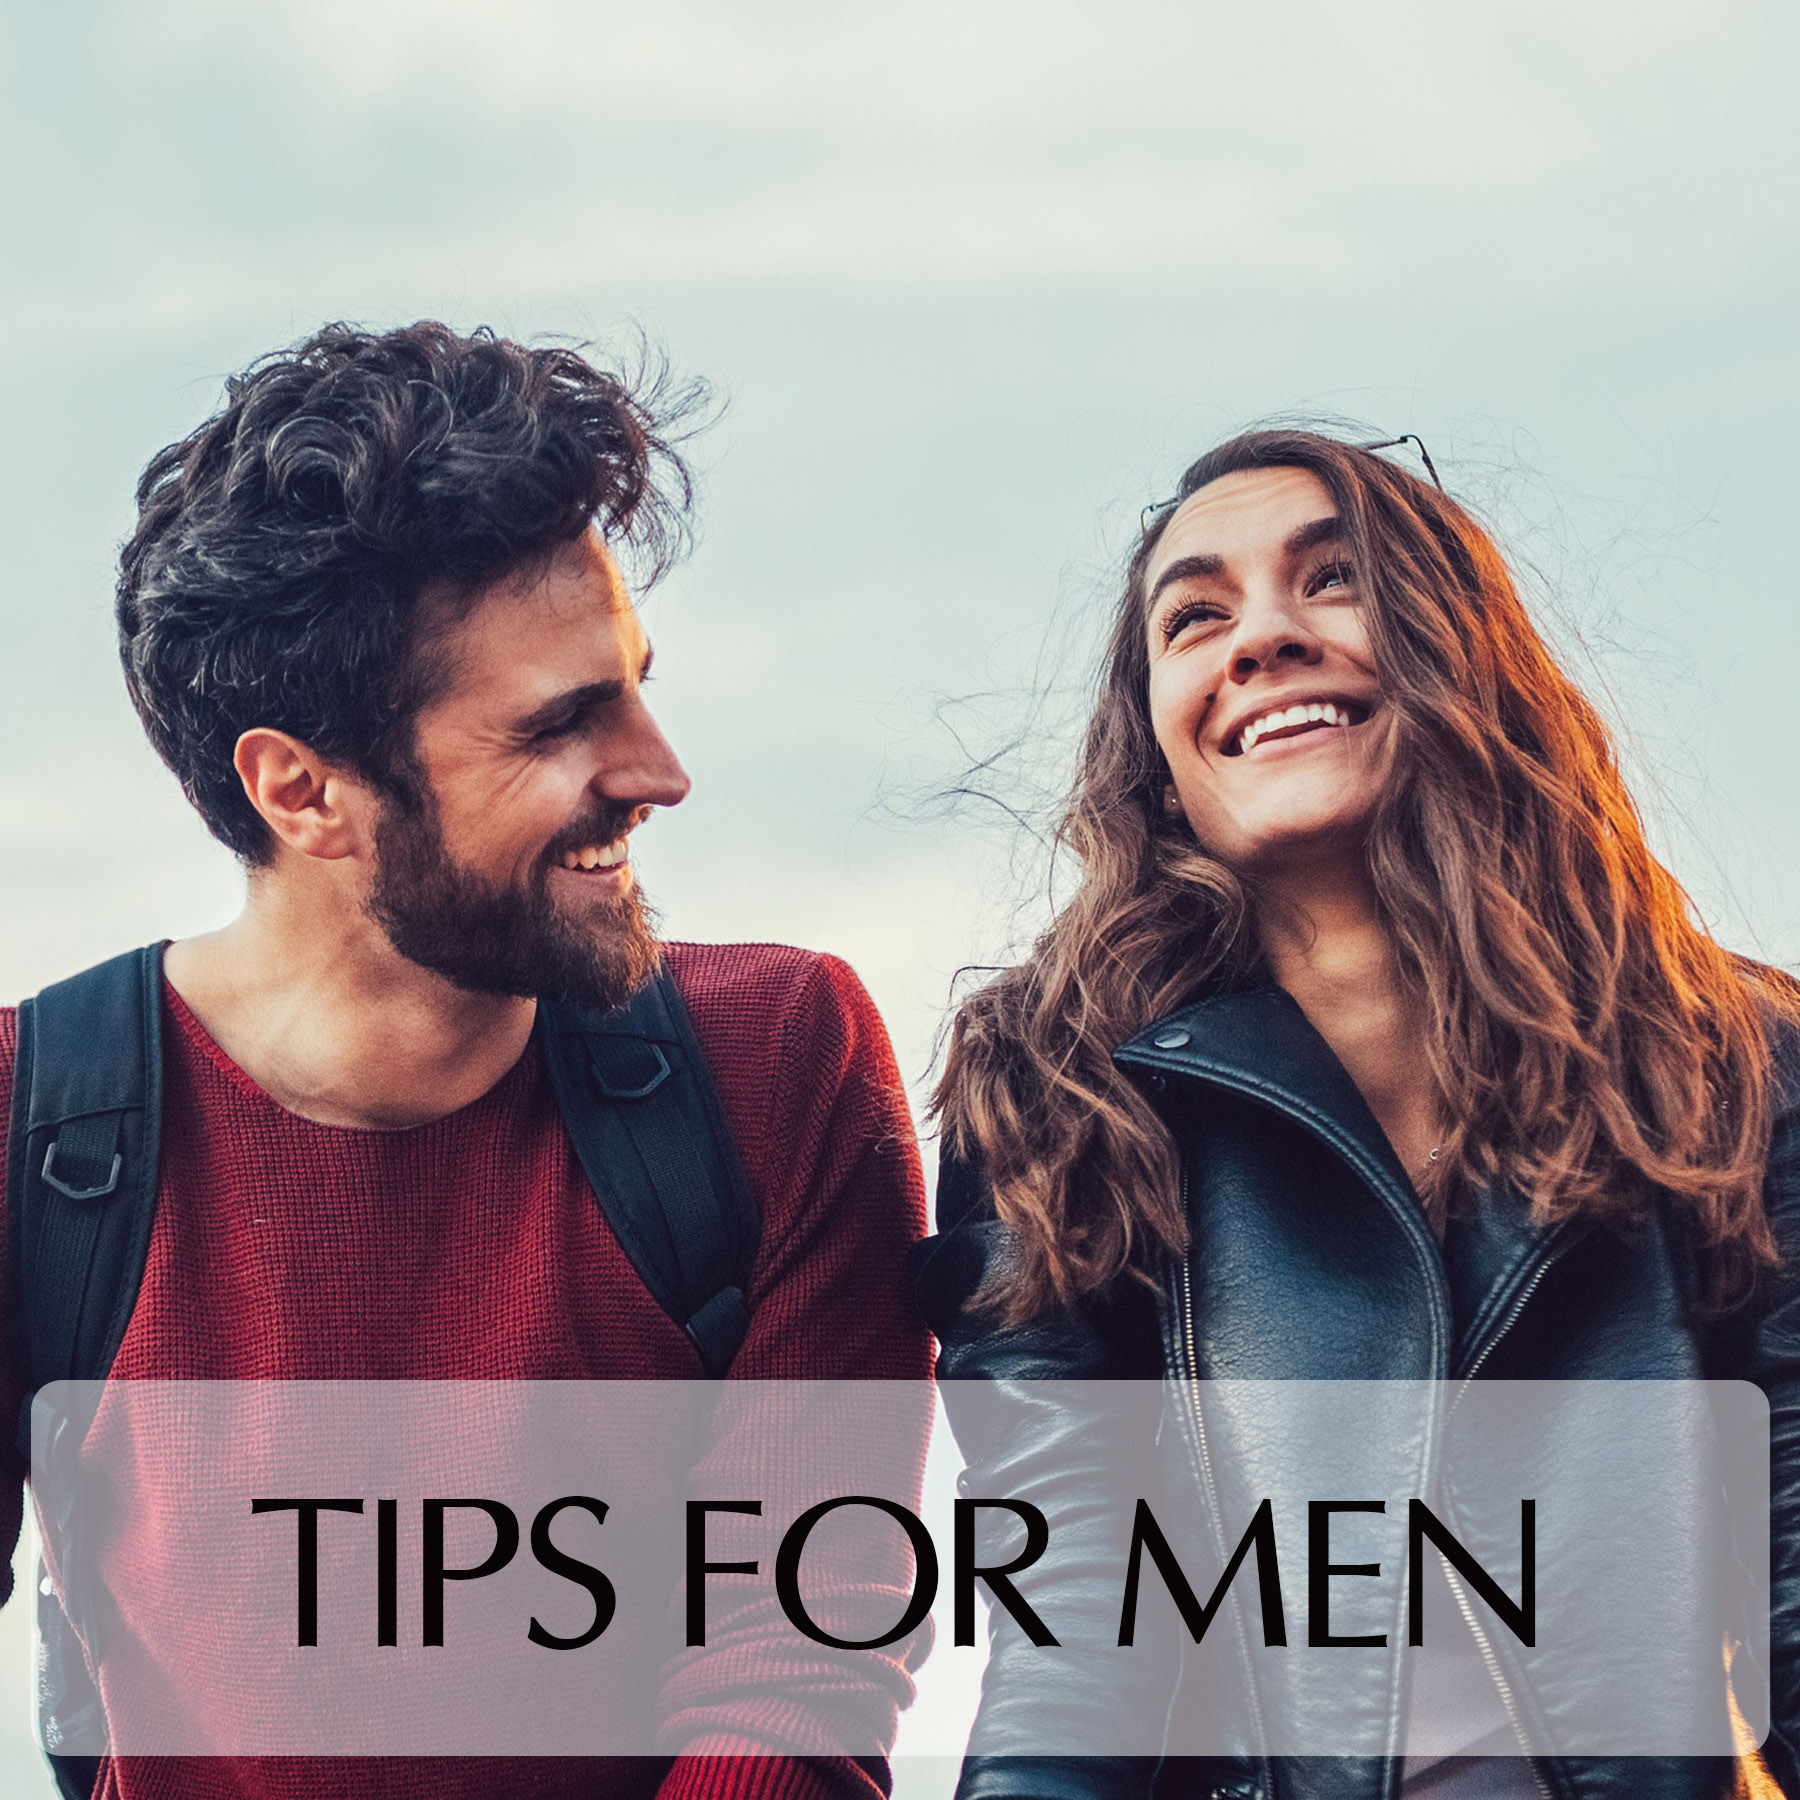 Tips for Men